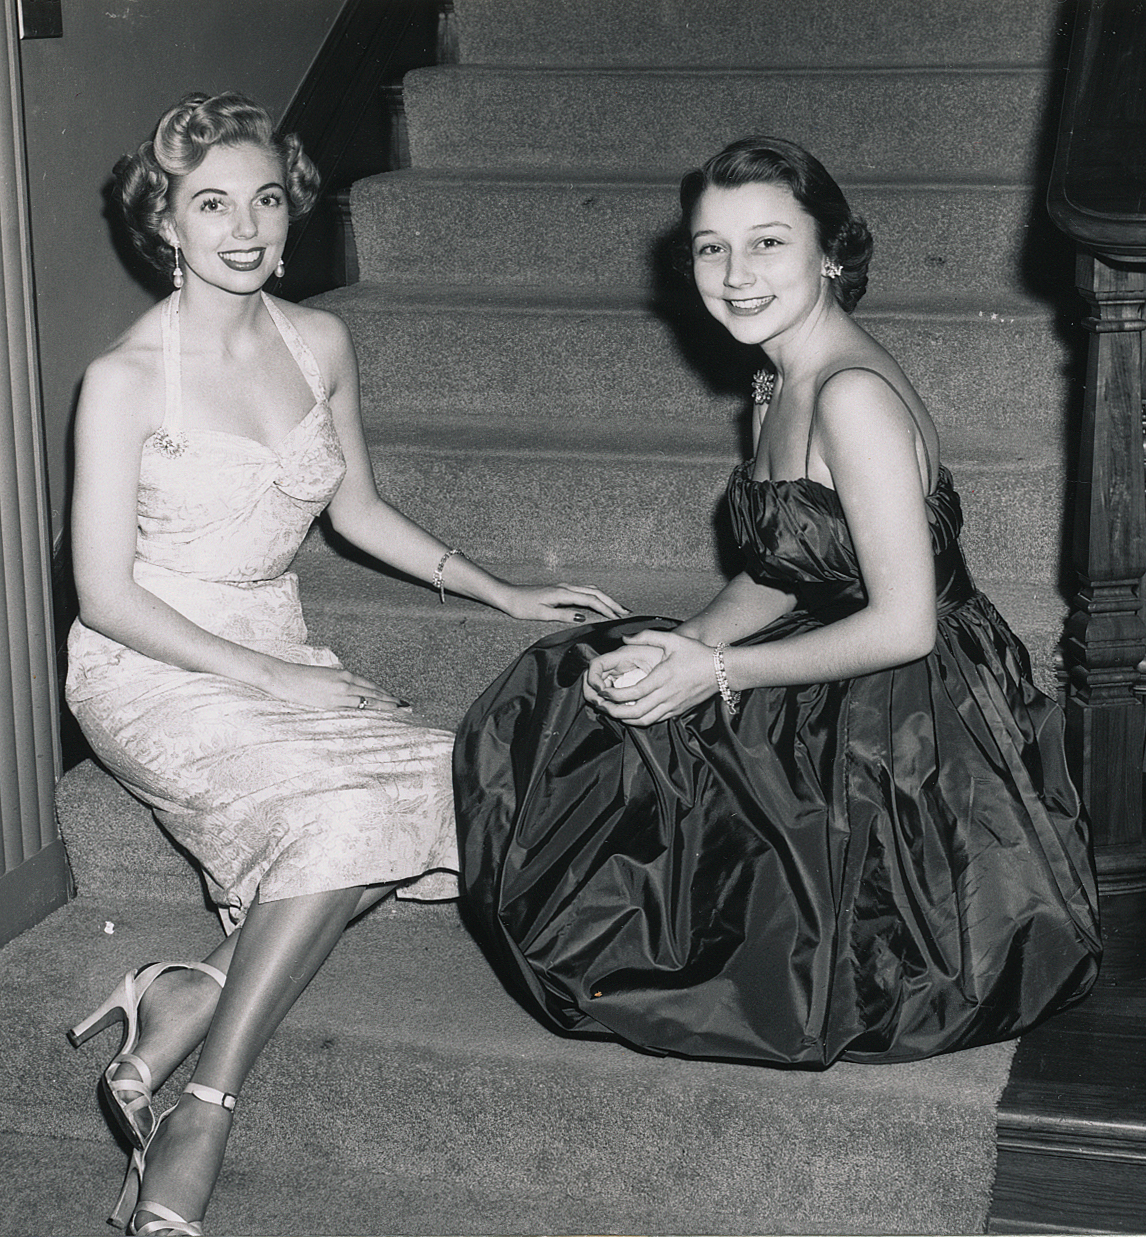 (above left to right) Mary Jo McCorkle and Mary Margaret Lackey at a dinner party given by Mrs. Clint Murchison for my mother and Ann McBee. Mary Jo is Dallas' very own Lana Turner — both sharing a glamorous essence.